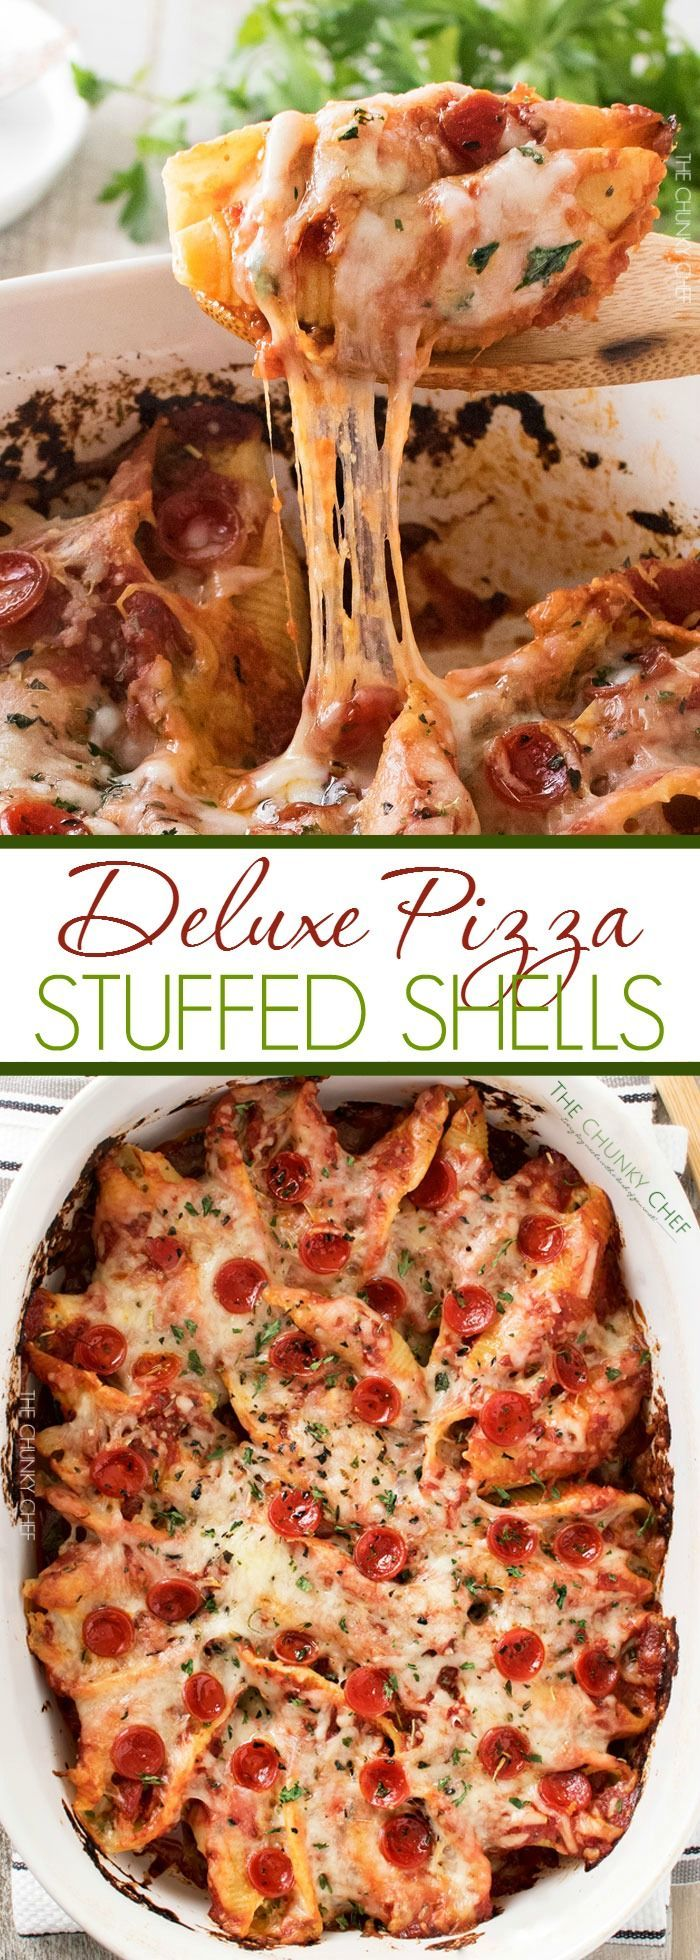 Deluxe Pizza Stuffed Shells | Classic stuffed shells meet deluxe pizza in this fusion of Italian meals... they're easy to make, freezer friendly, and great for families! | http://thechunkychef.com